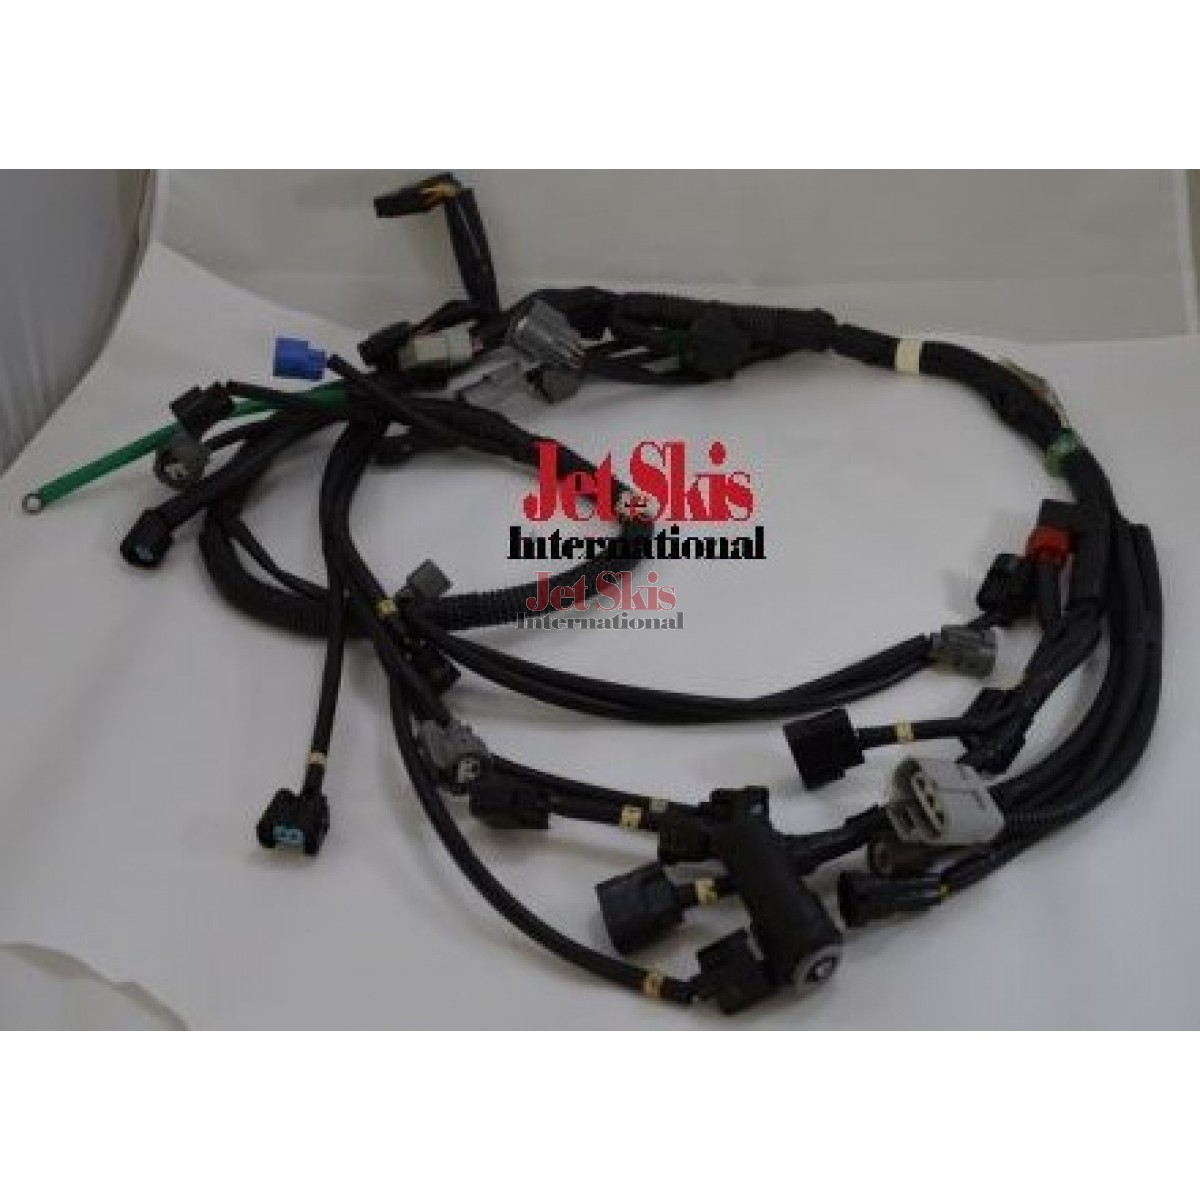 hight resolution of 2005 2007 f12x injector and ignition coil sub harness 32101 hw1 730 f 12x 2005 engine diagram source diagrams acsink turbine